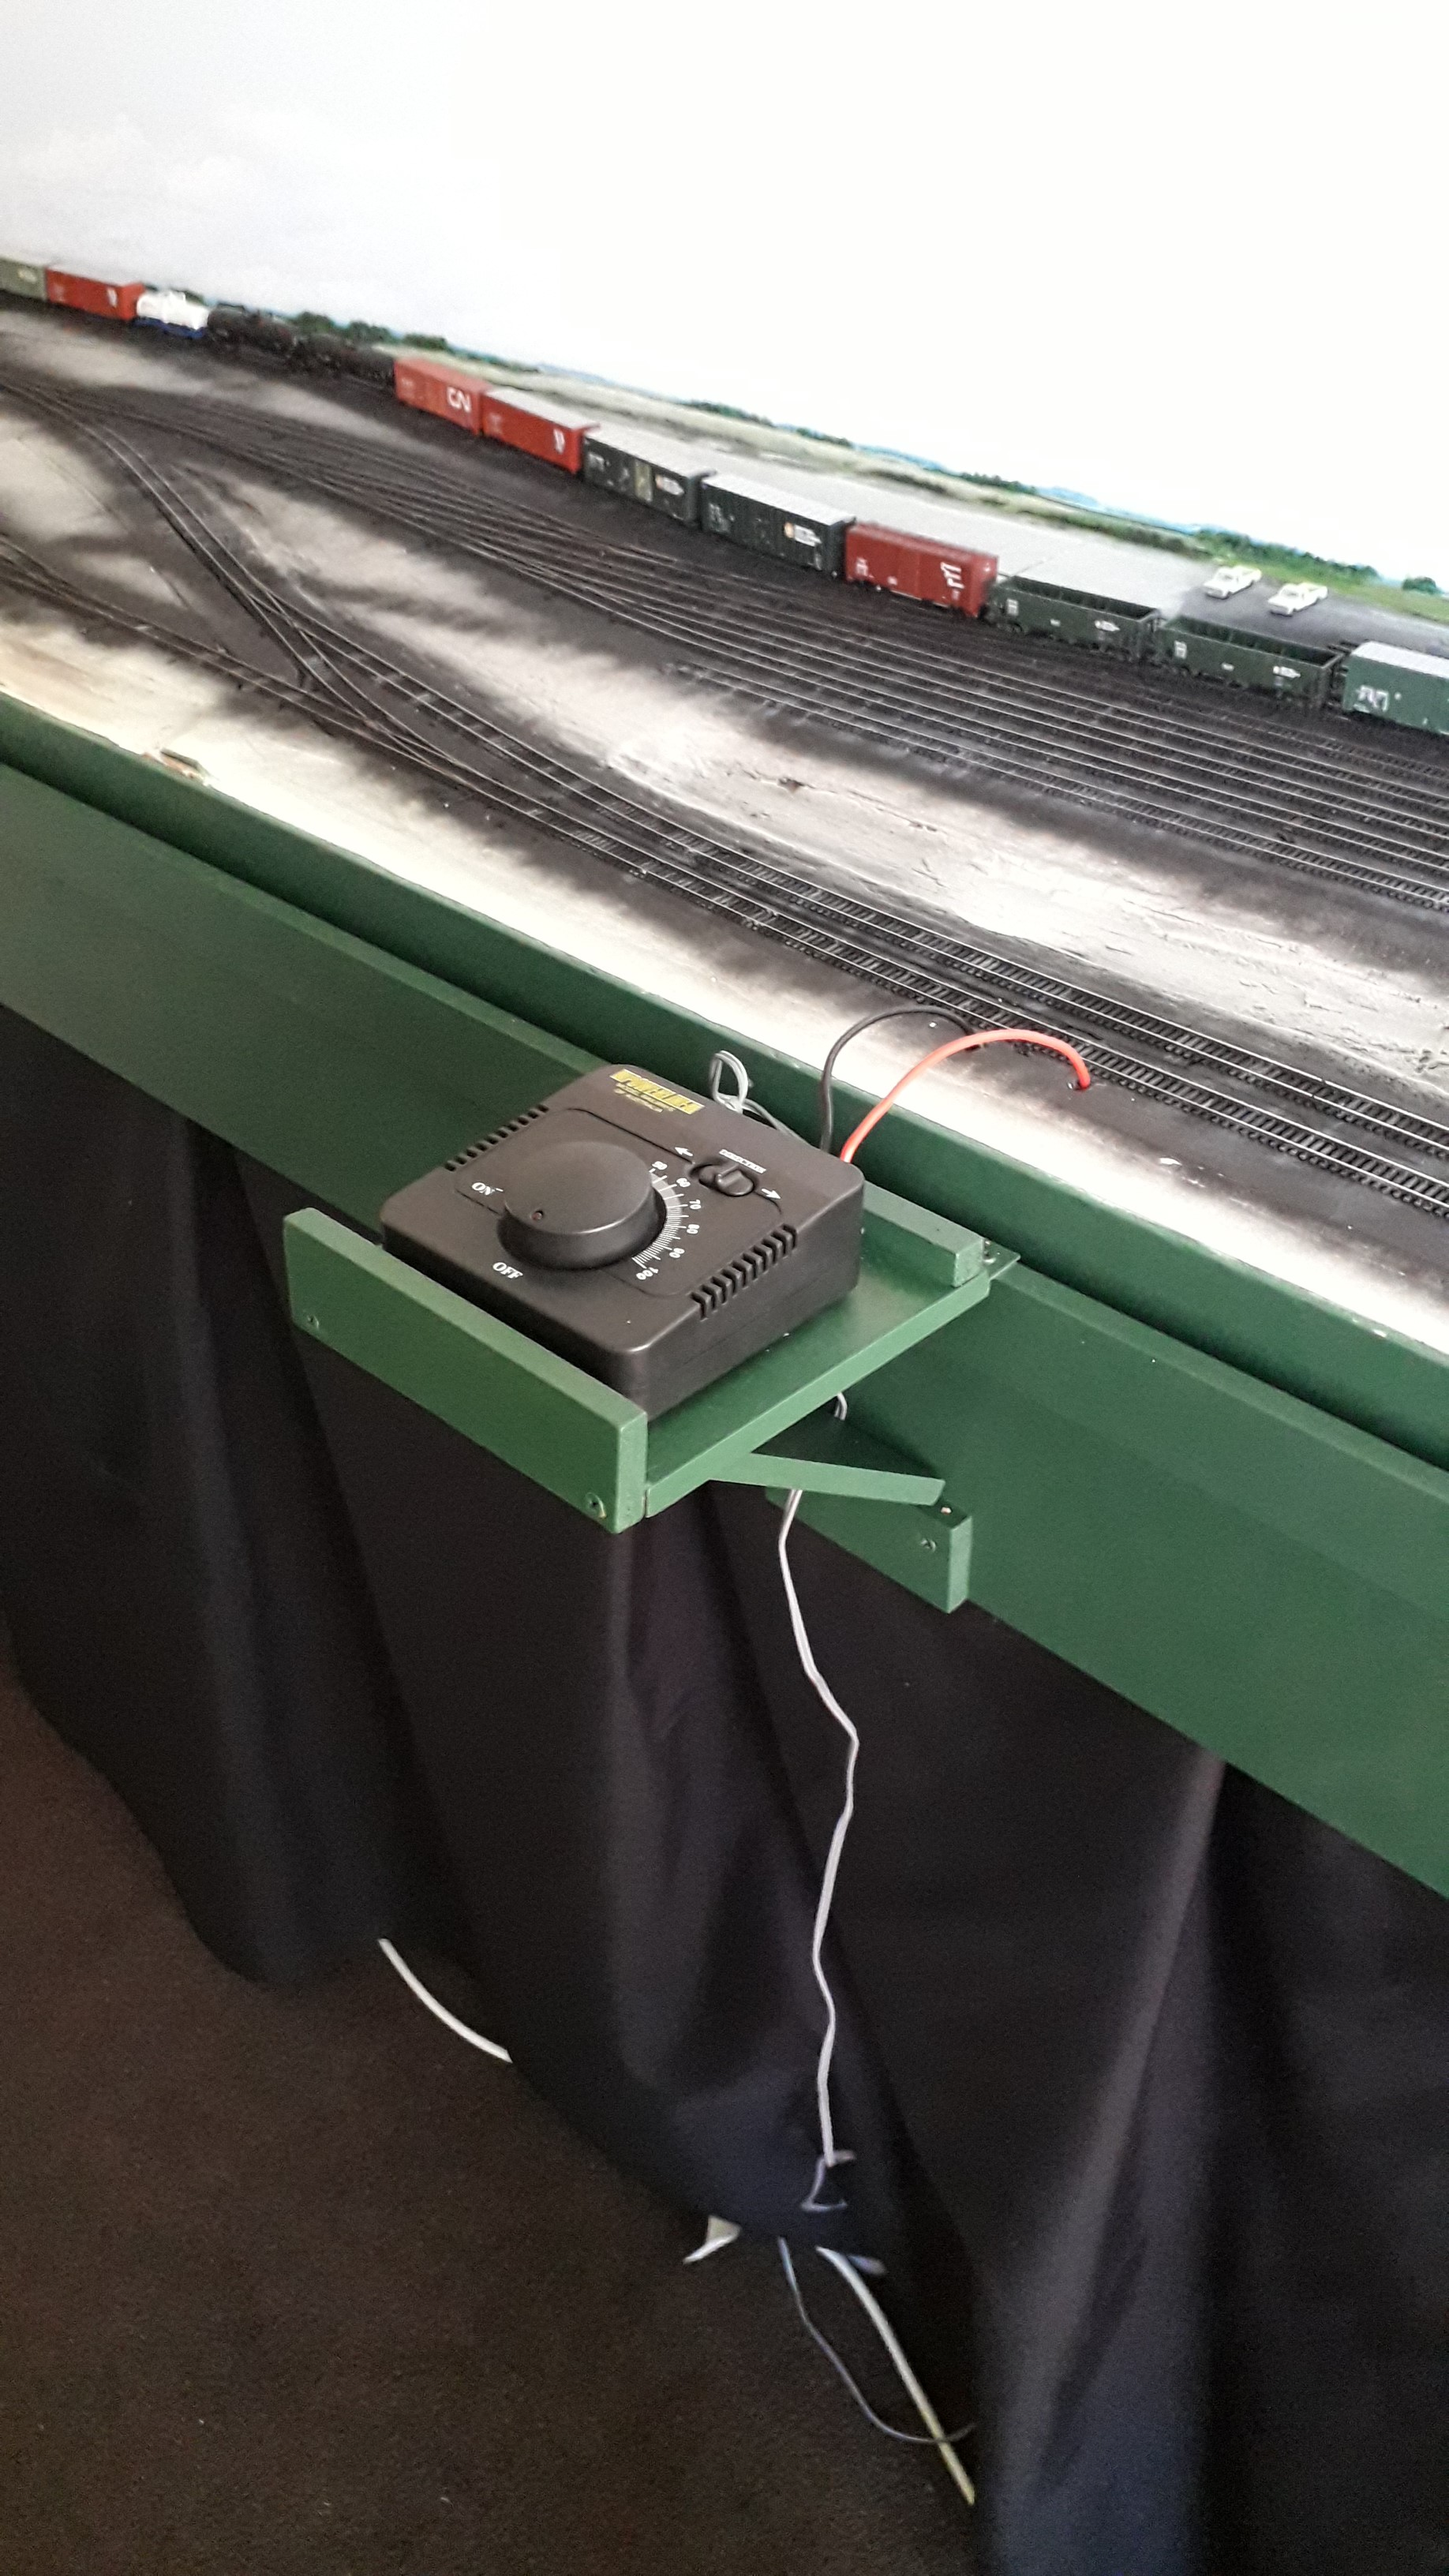 British Columbia Railway Fort St John Subdivision In N Scale The Gauge Track Wiring Dcc Best Practice For Is To Make Sure Every Piece Of No Matter How Short Has Its Own Set Feeders I Followed This And Result Was